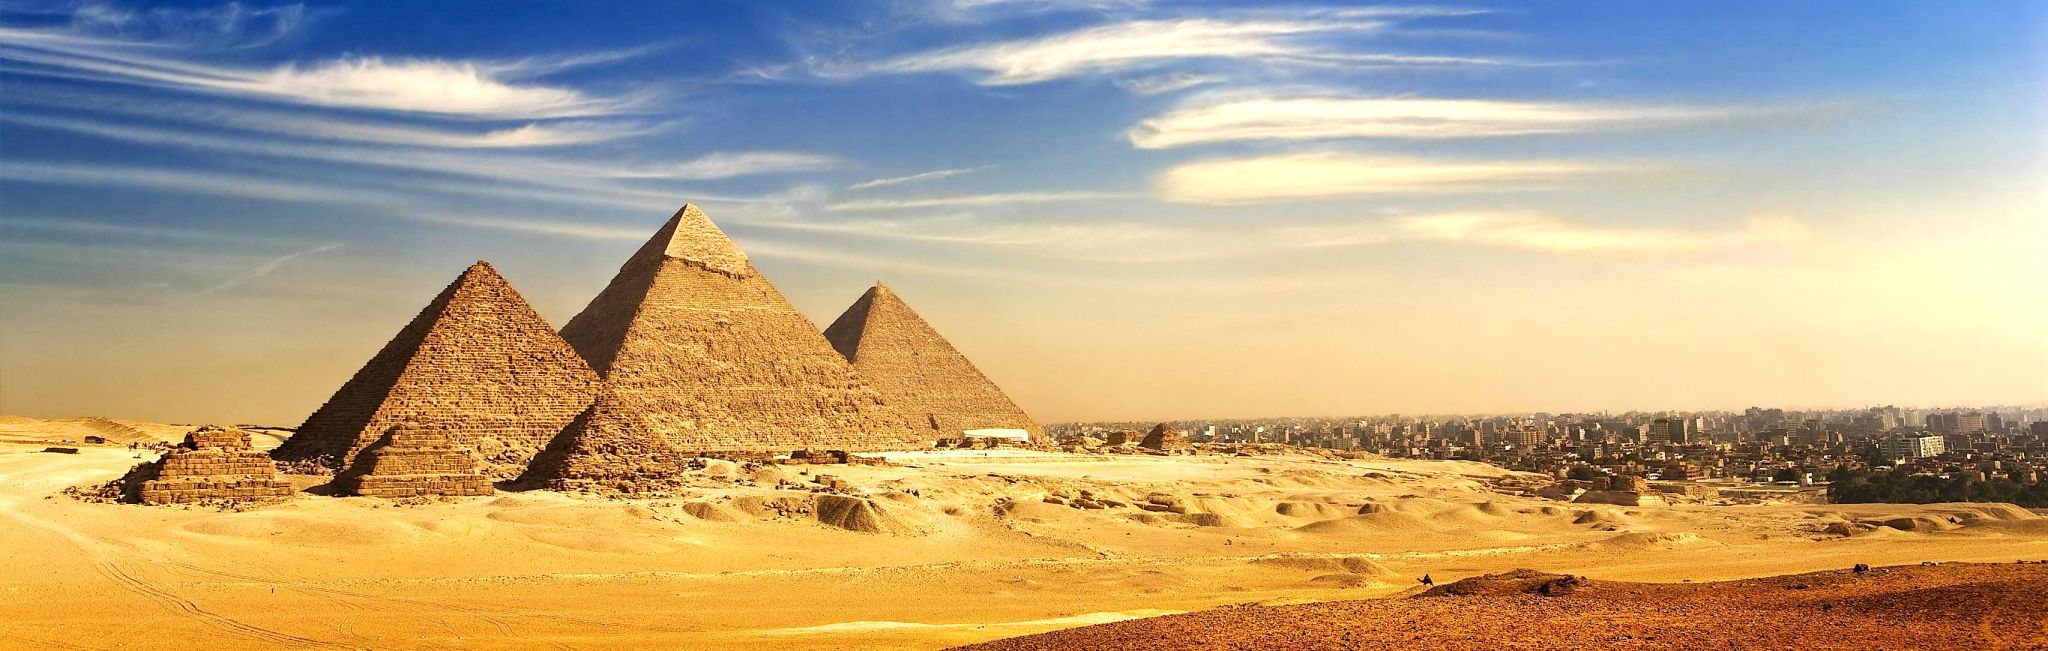 Egypt Travel Packages From South Africa